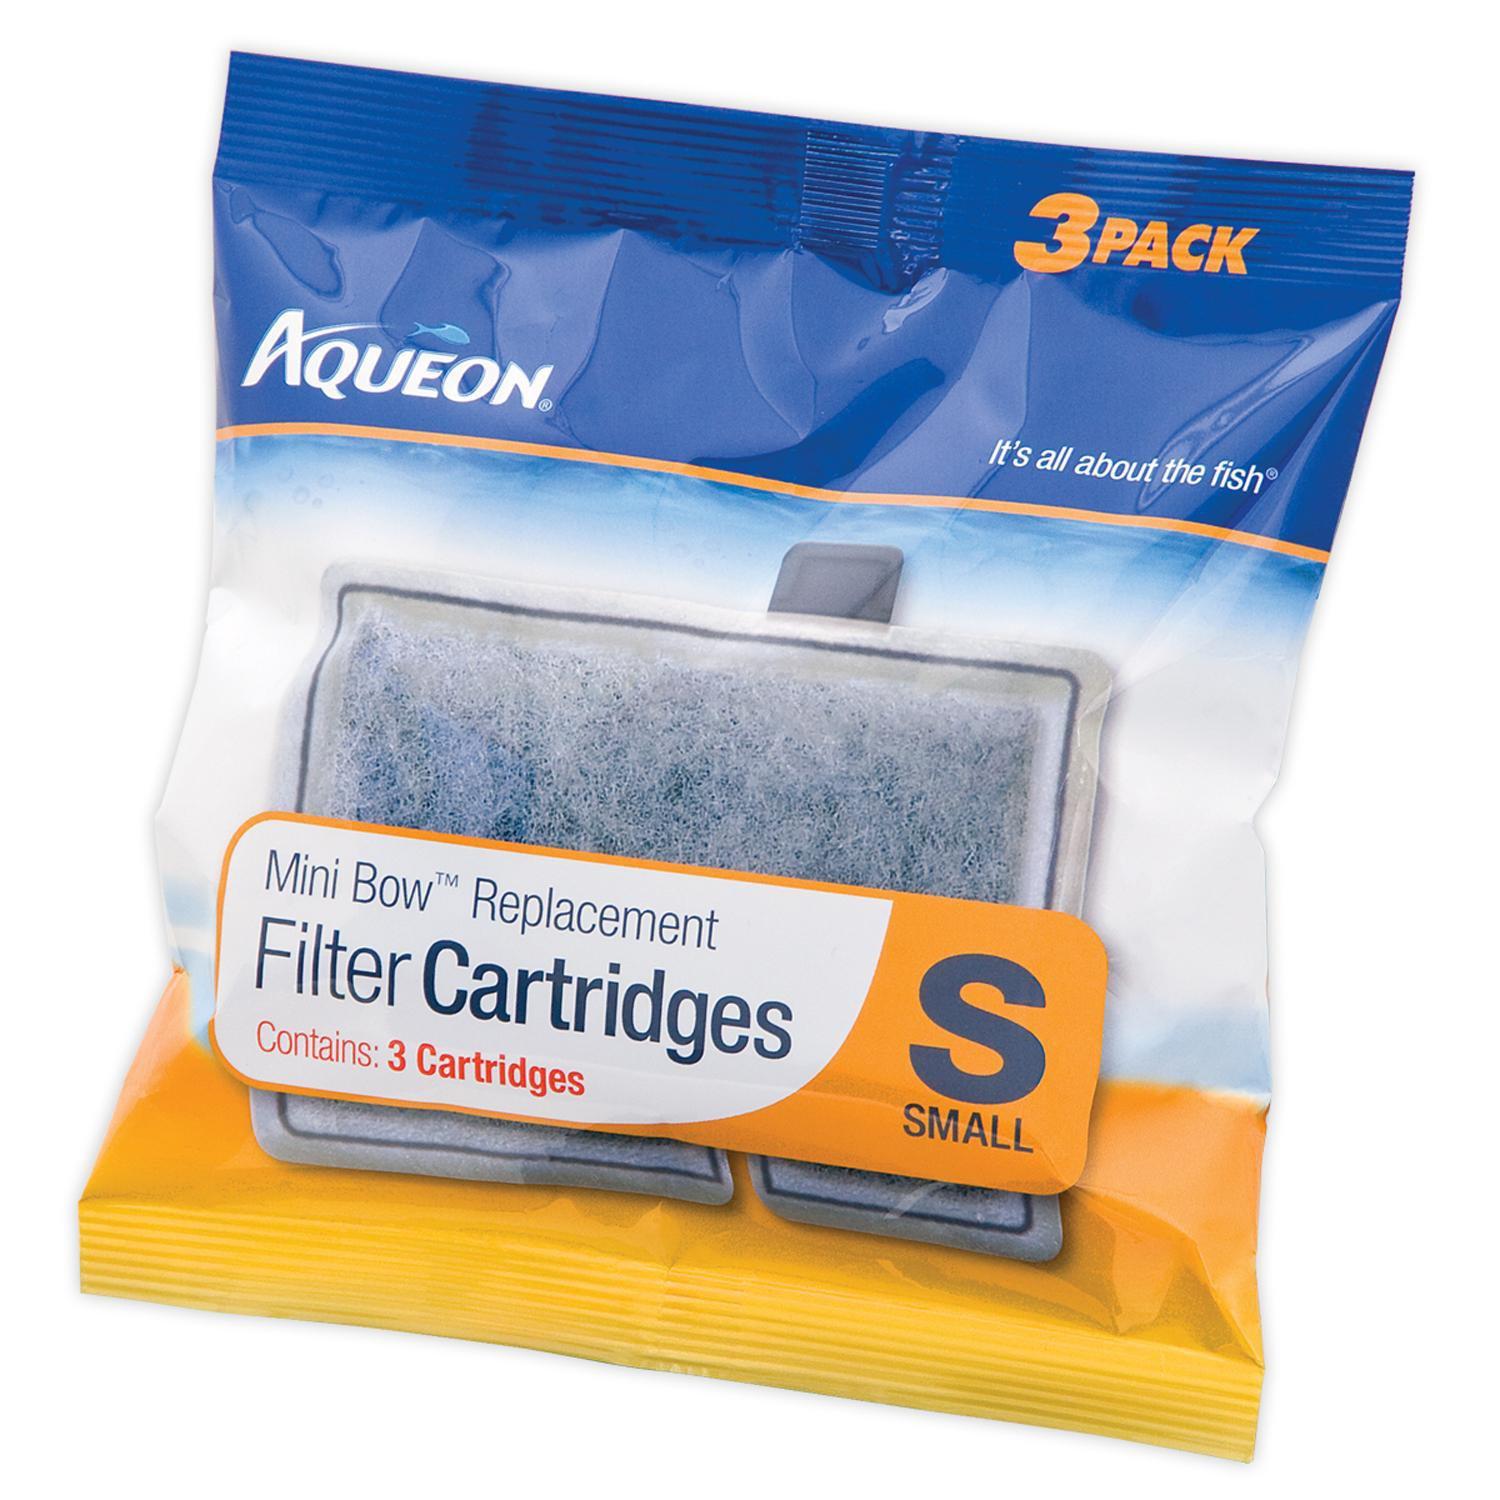 Aqueon MiniBow Replacement Filter Cartridges